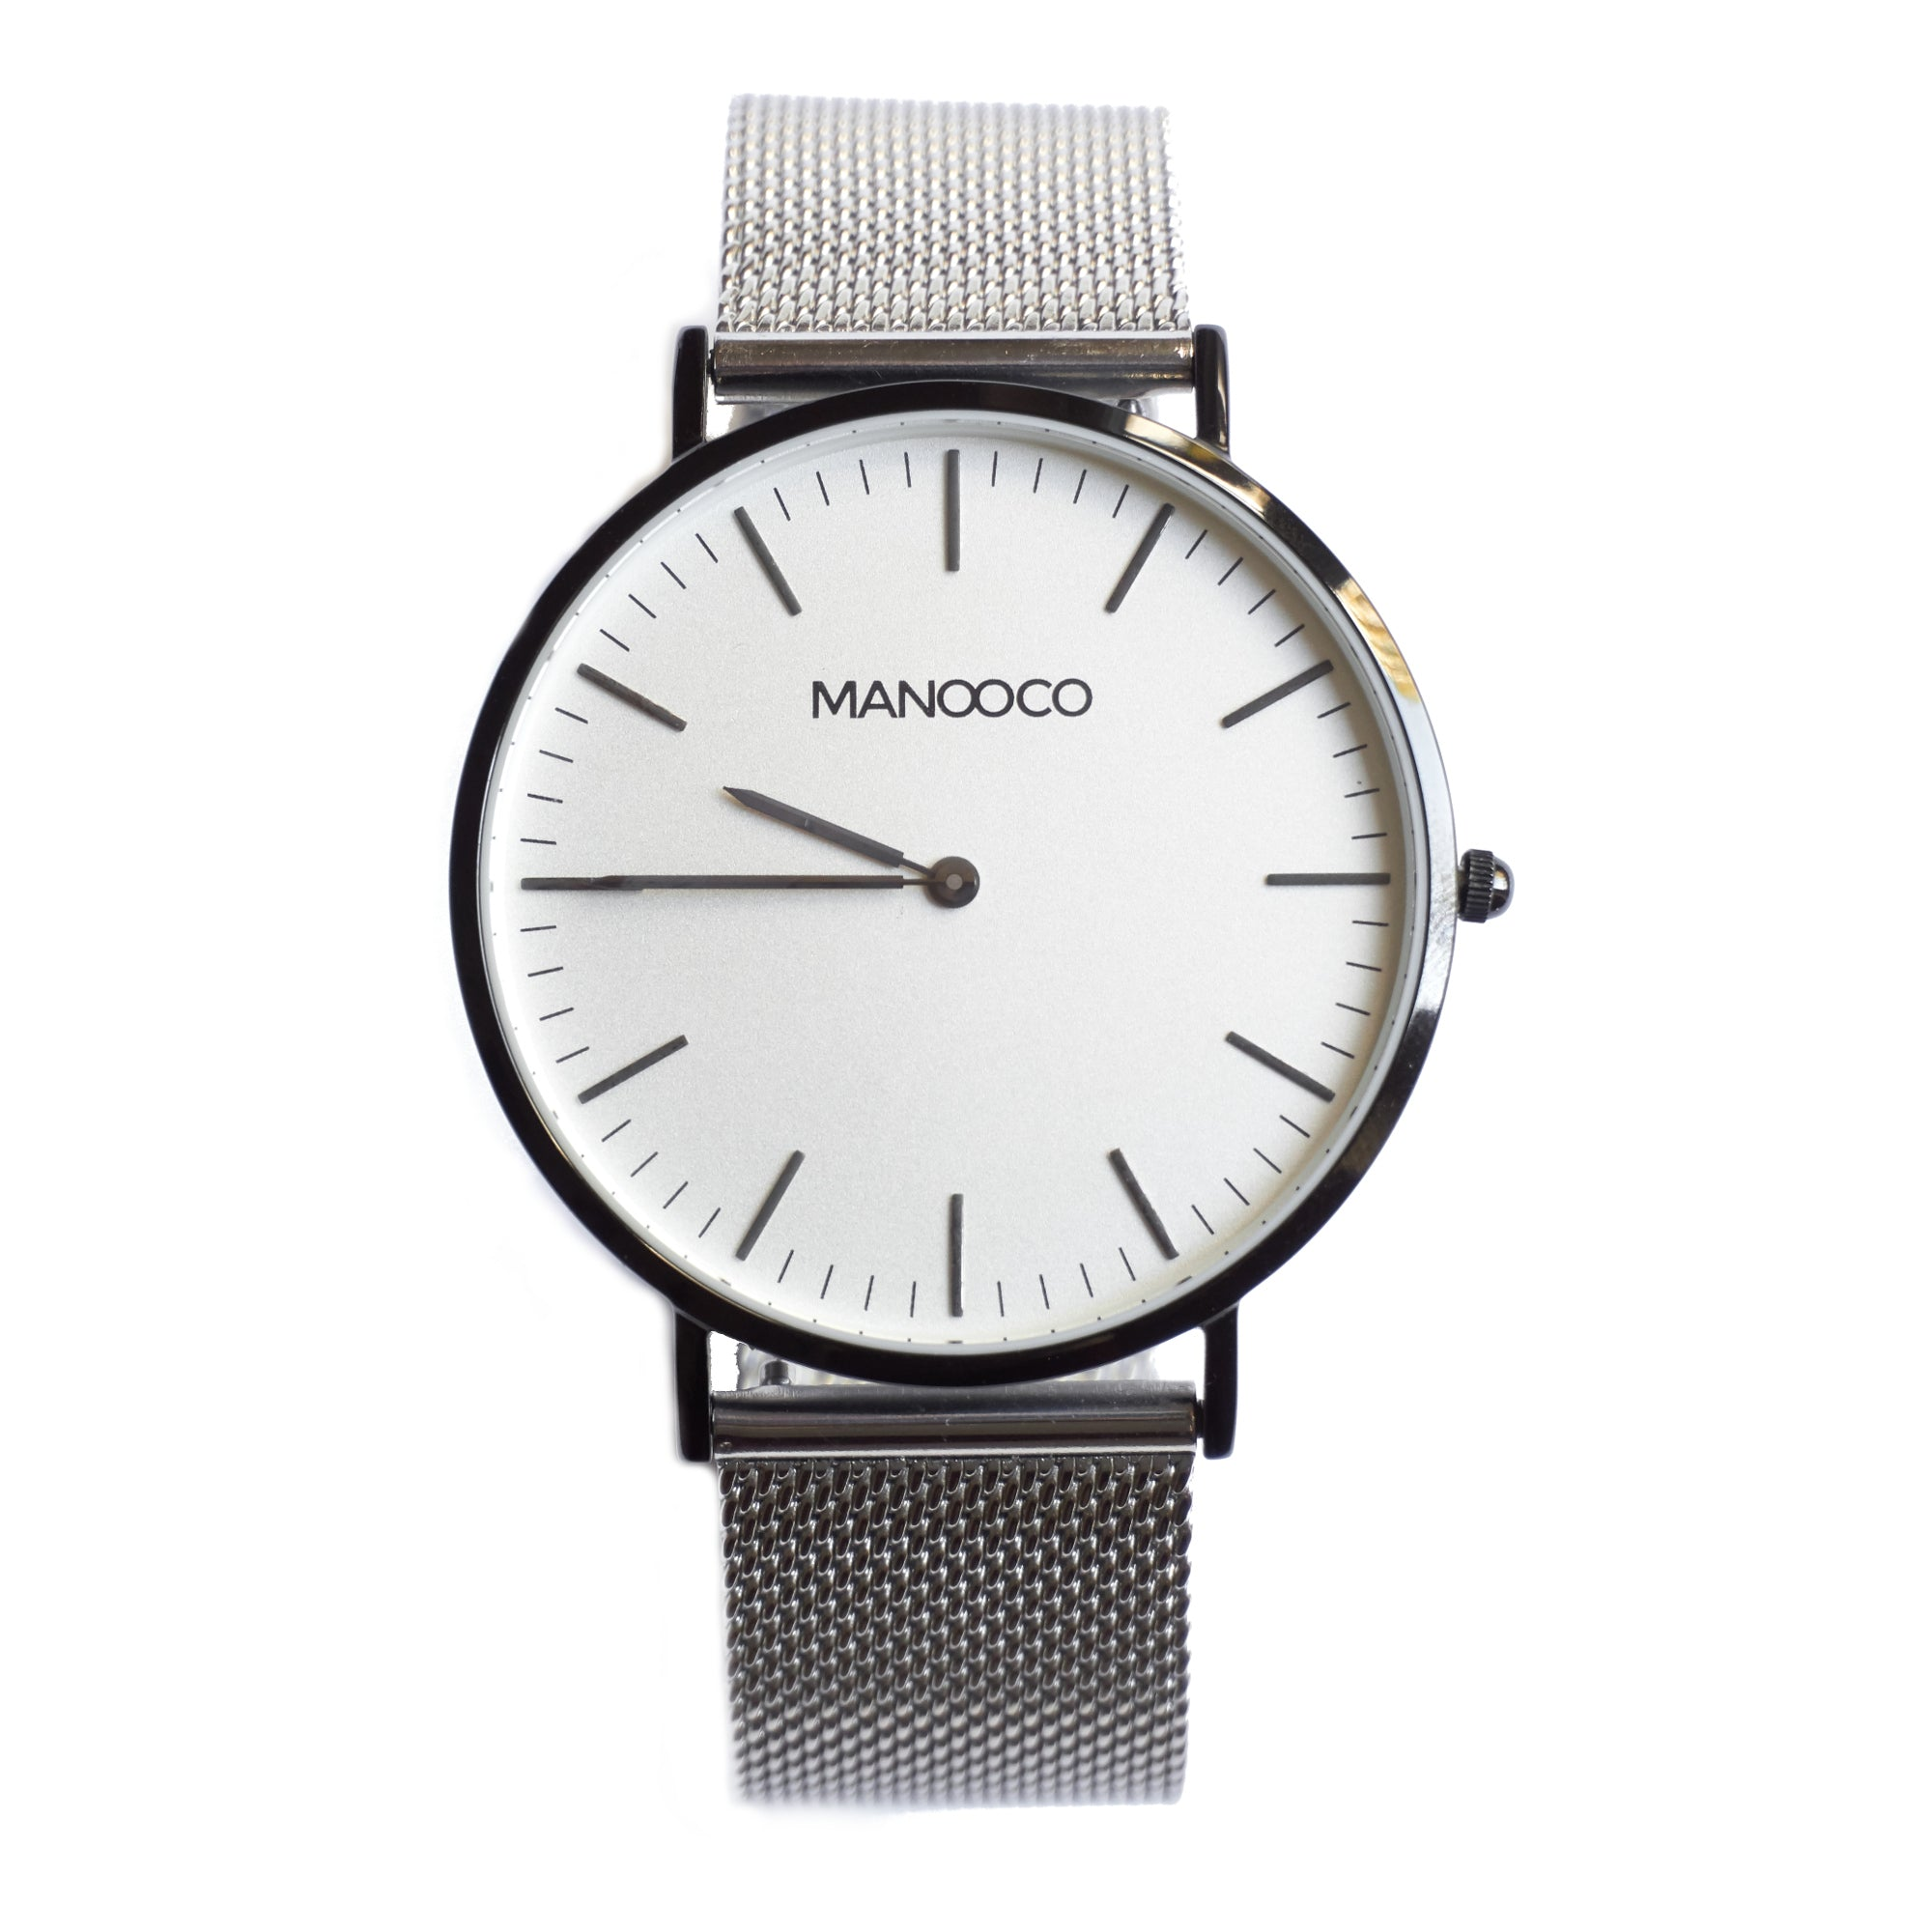 Zephyr Black / Silver Mesh - Watch - MANOOCO - Watch - manooco